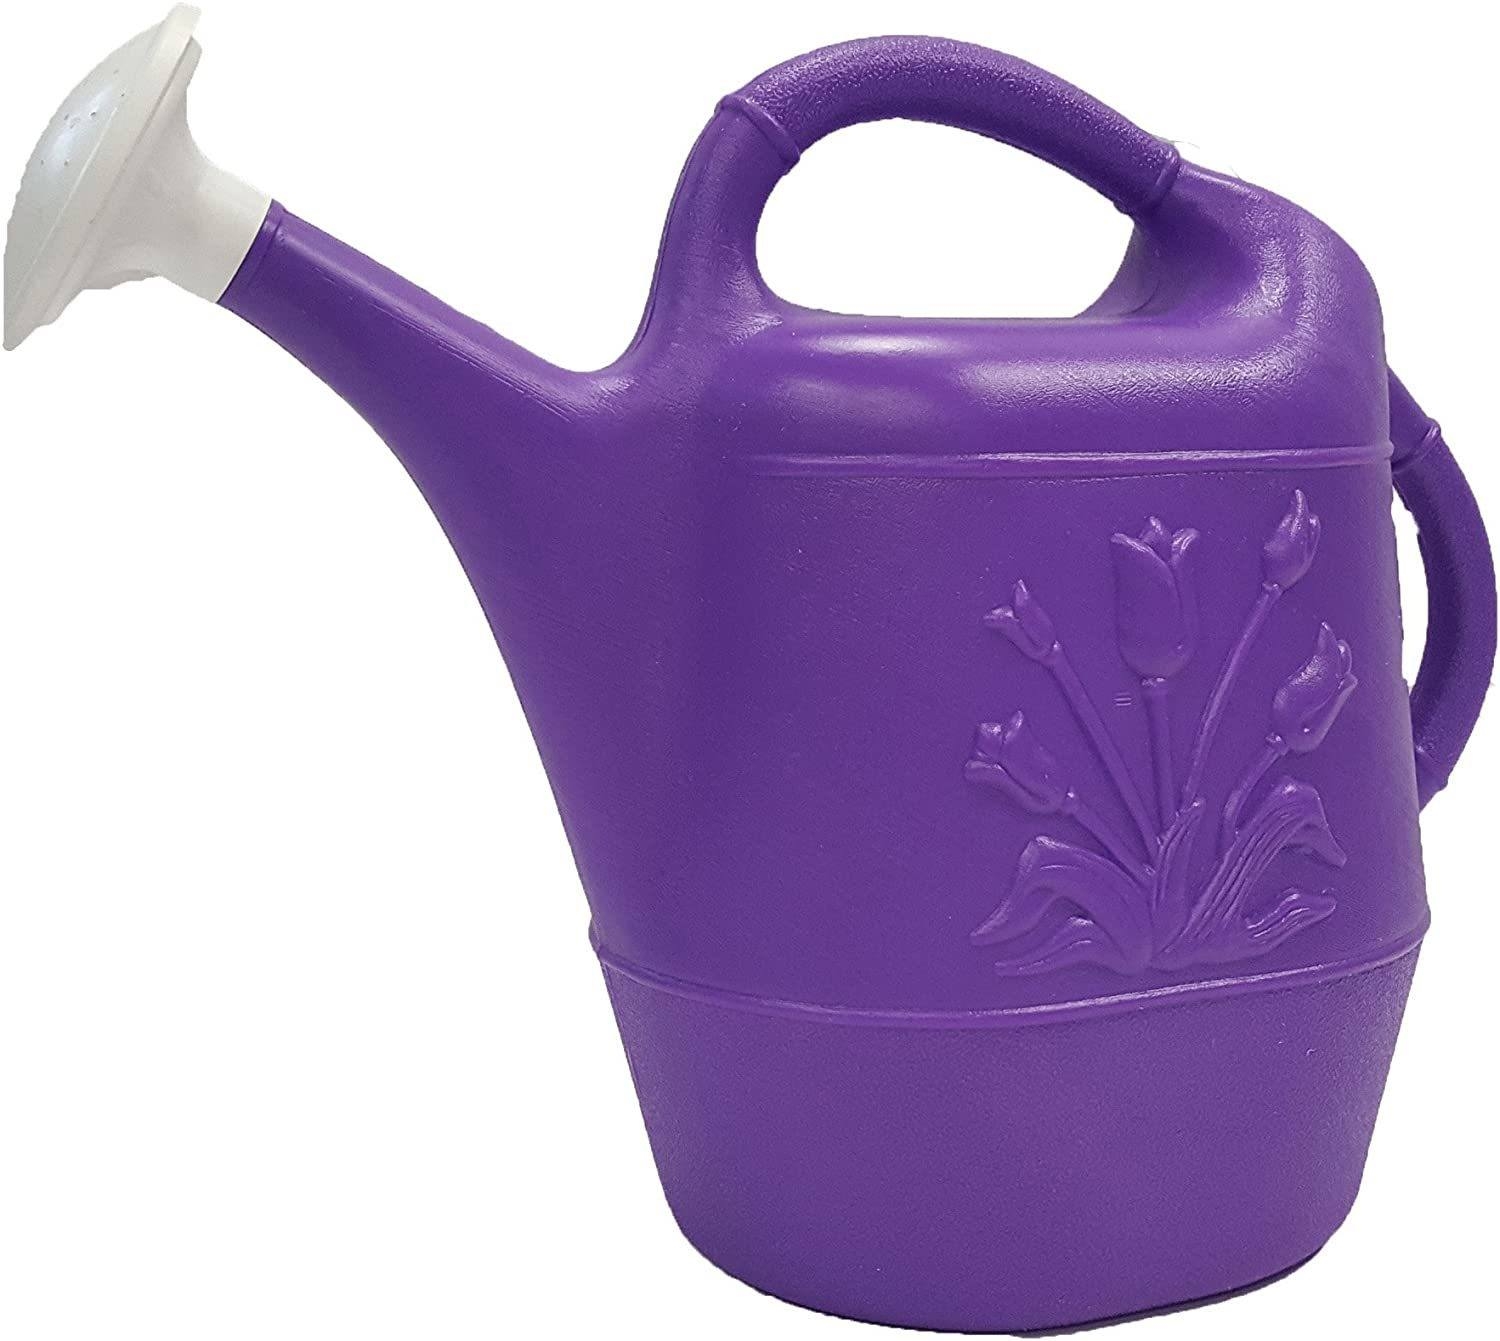 union plastic watering can image